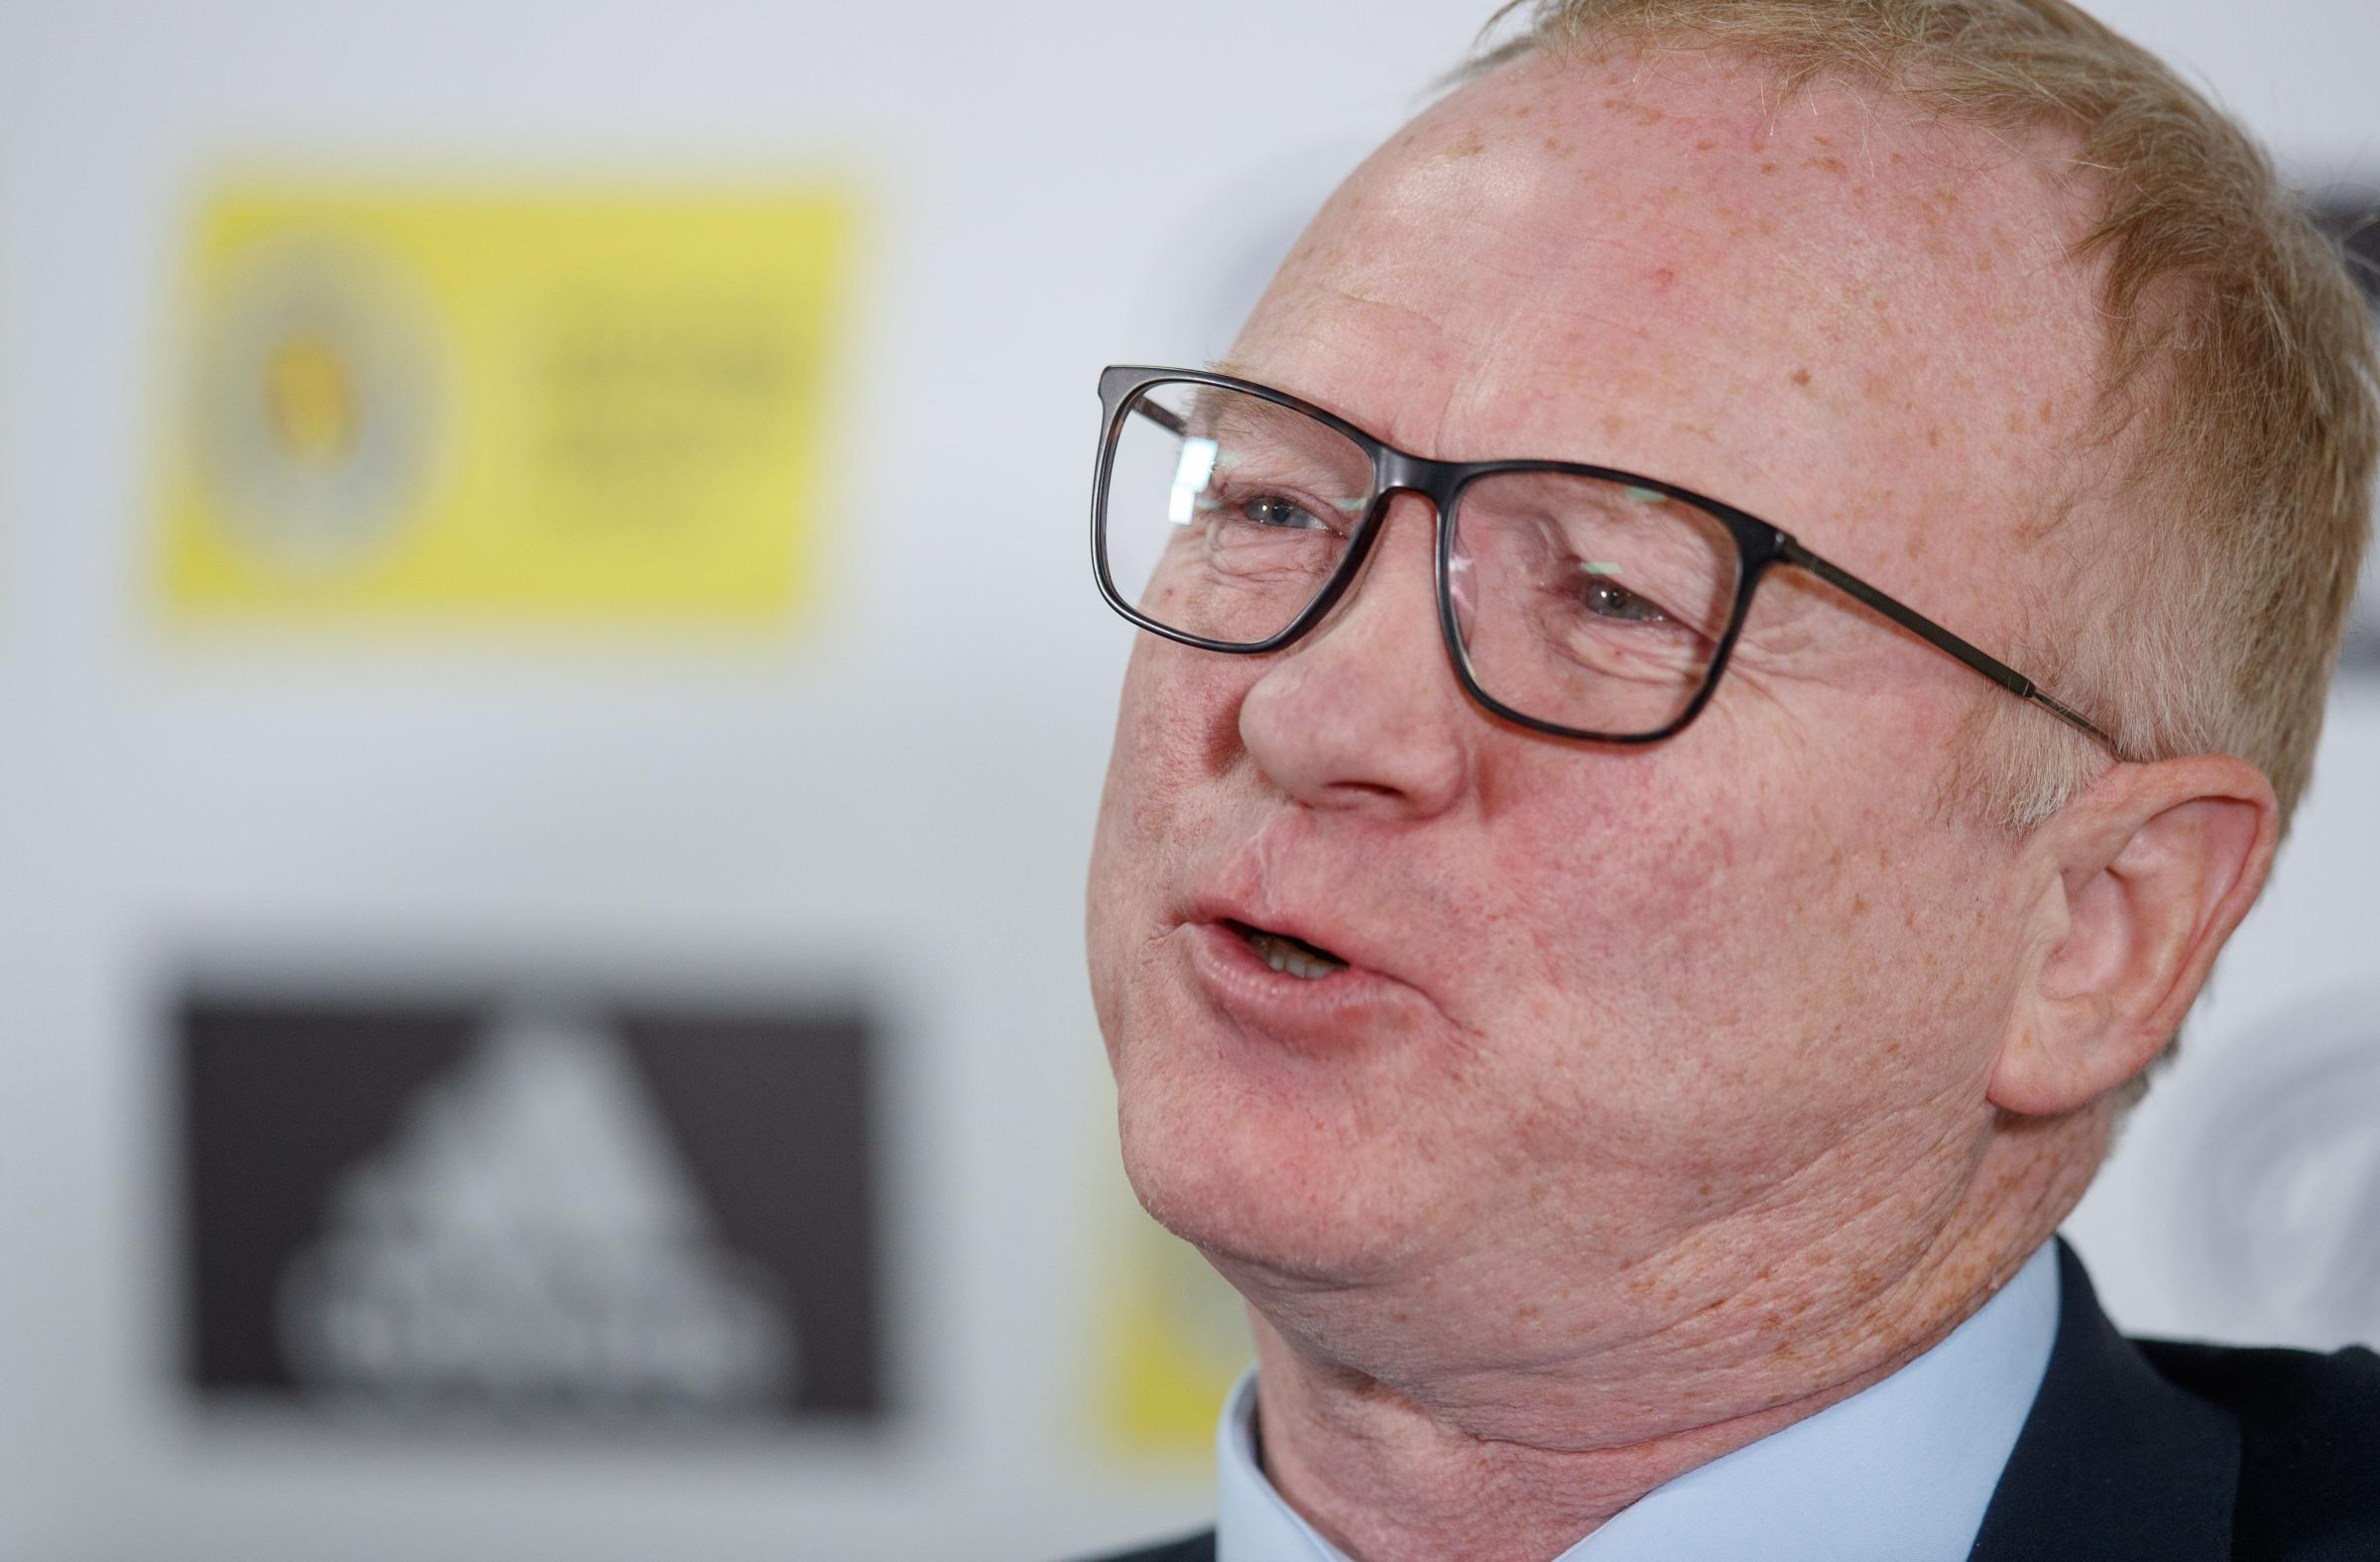 1 October 2018 Hampden Park Glasgow: Scotland Manager Alex Mcleish speaks to the media ahead of their Nations League Group matches against Israel and Portugal.